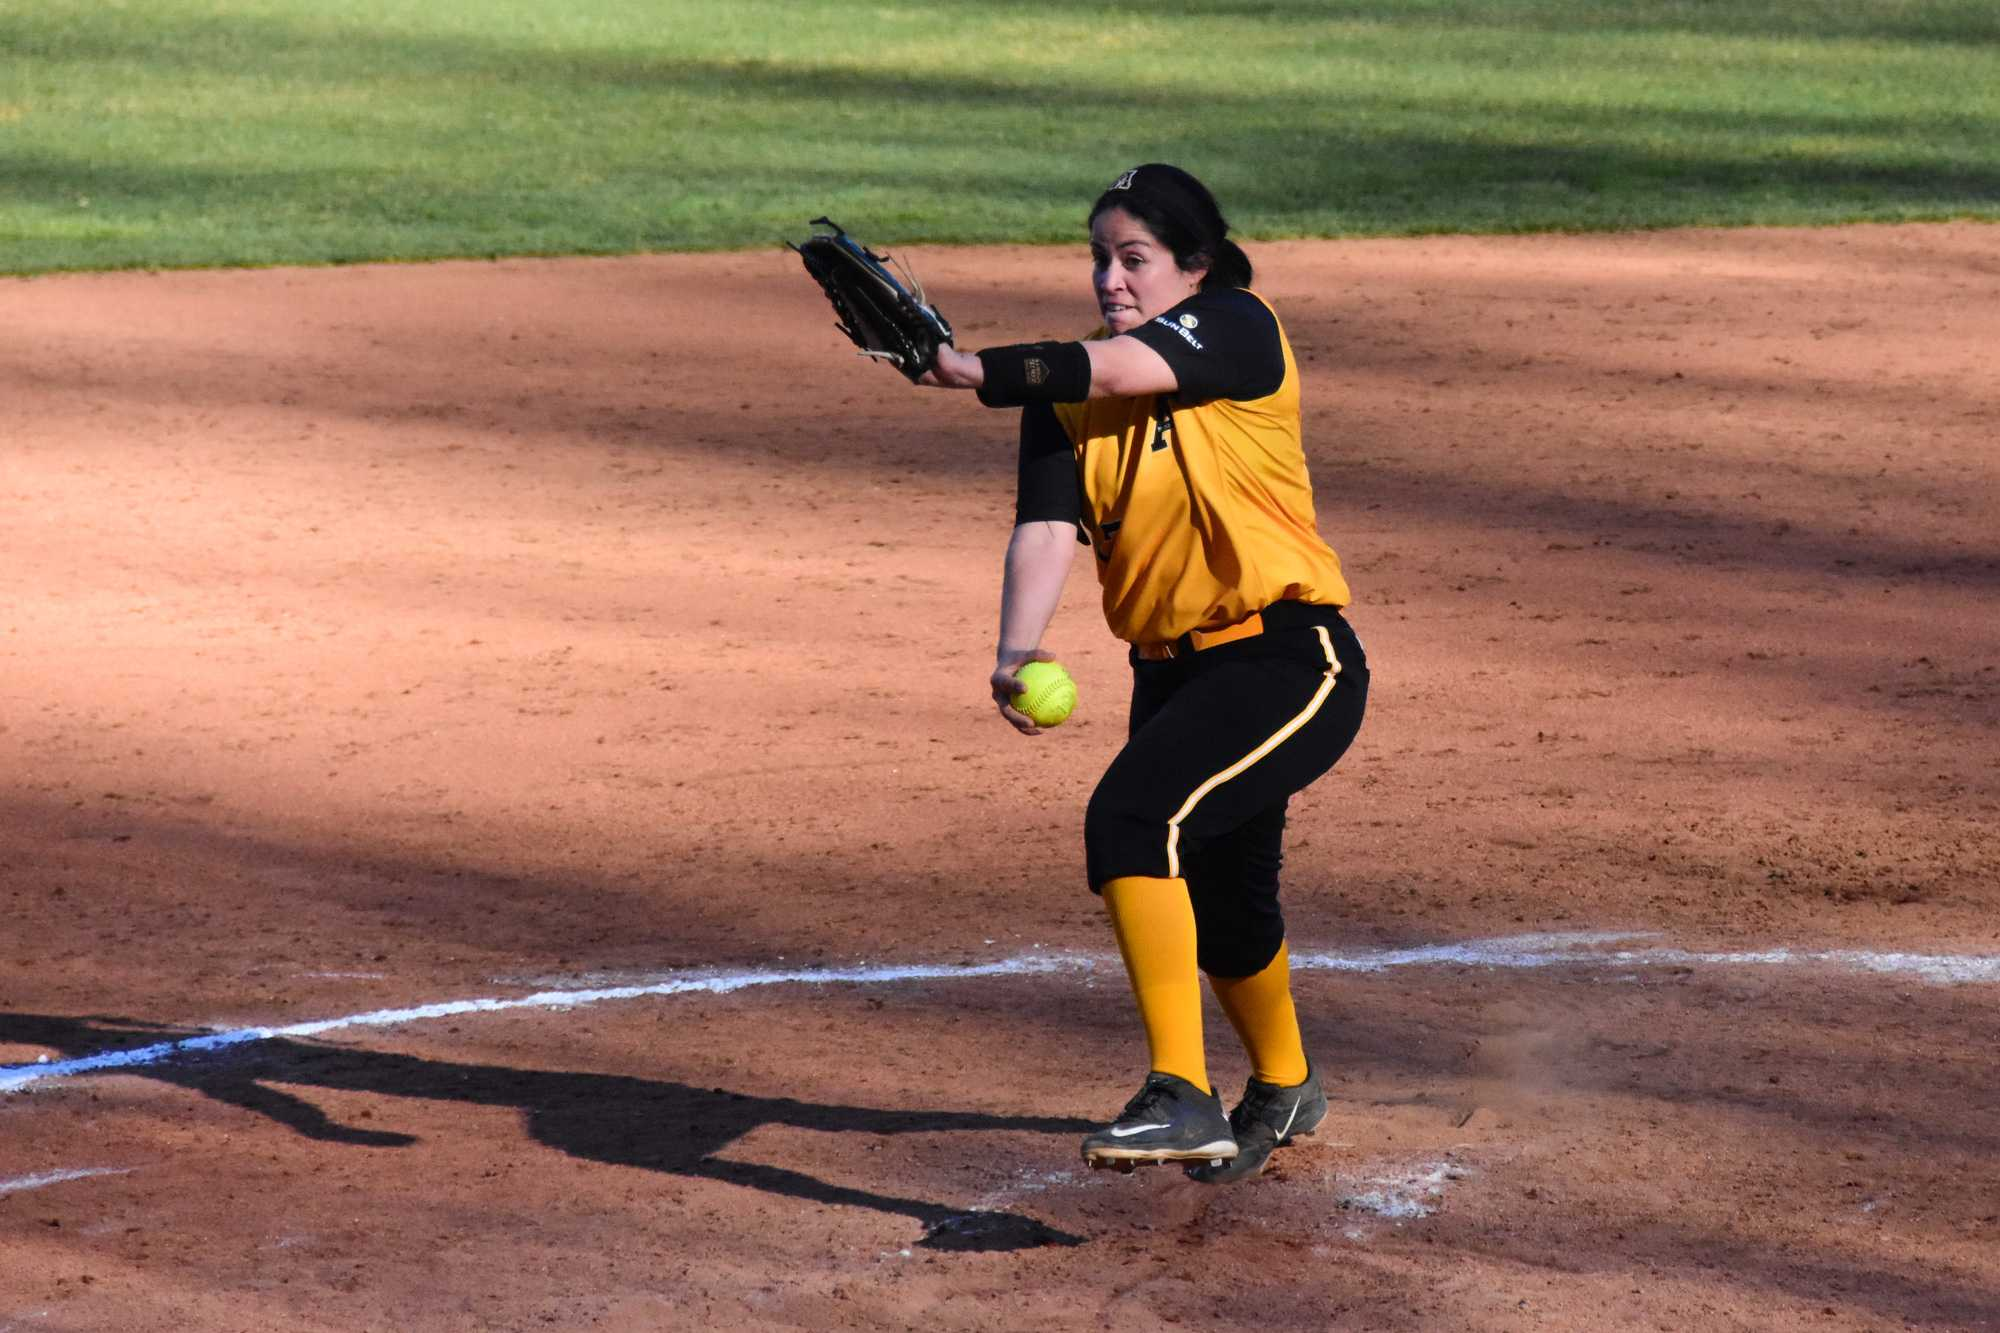 Junior pitcher Vanessa Ciocatto winds up a pitch on Tuesday's game against Morehead State. The game resulted in a 0-7 loss for App State.